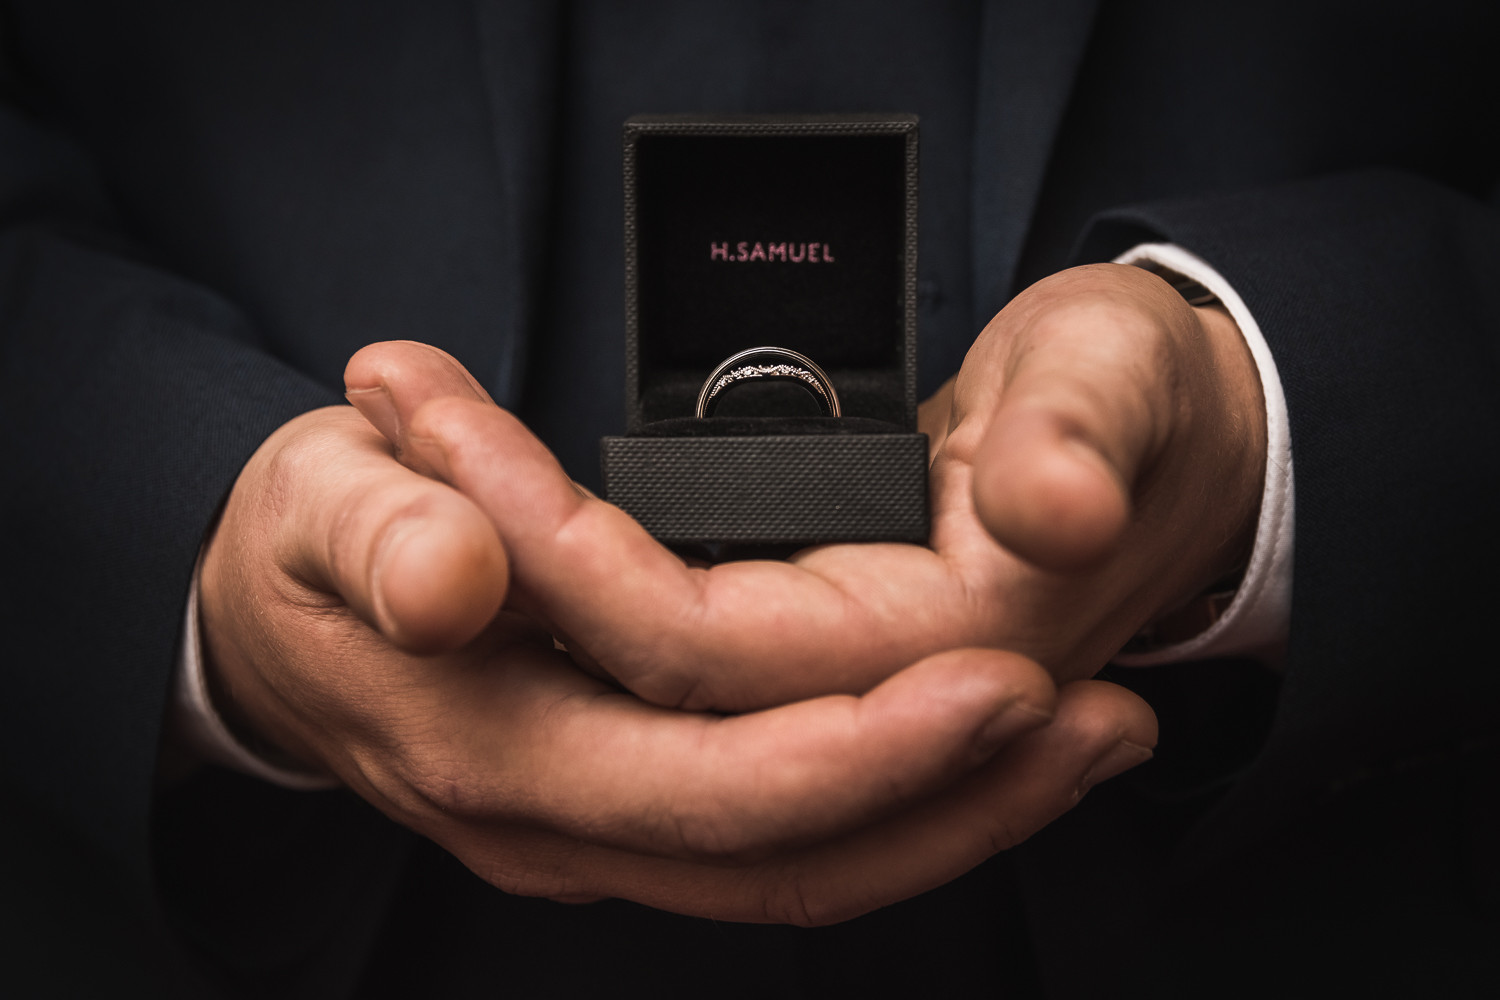 A groom cups both of his hands and shows the wedding rings chosen for him and his bride to be.